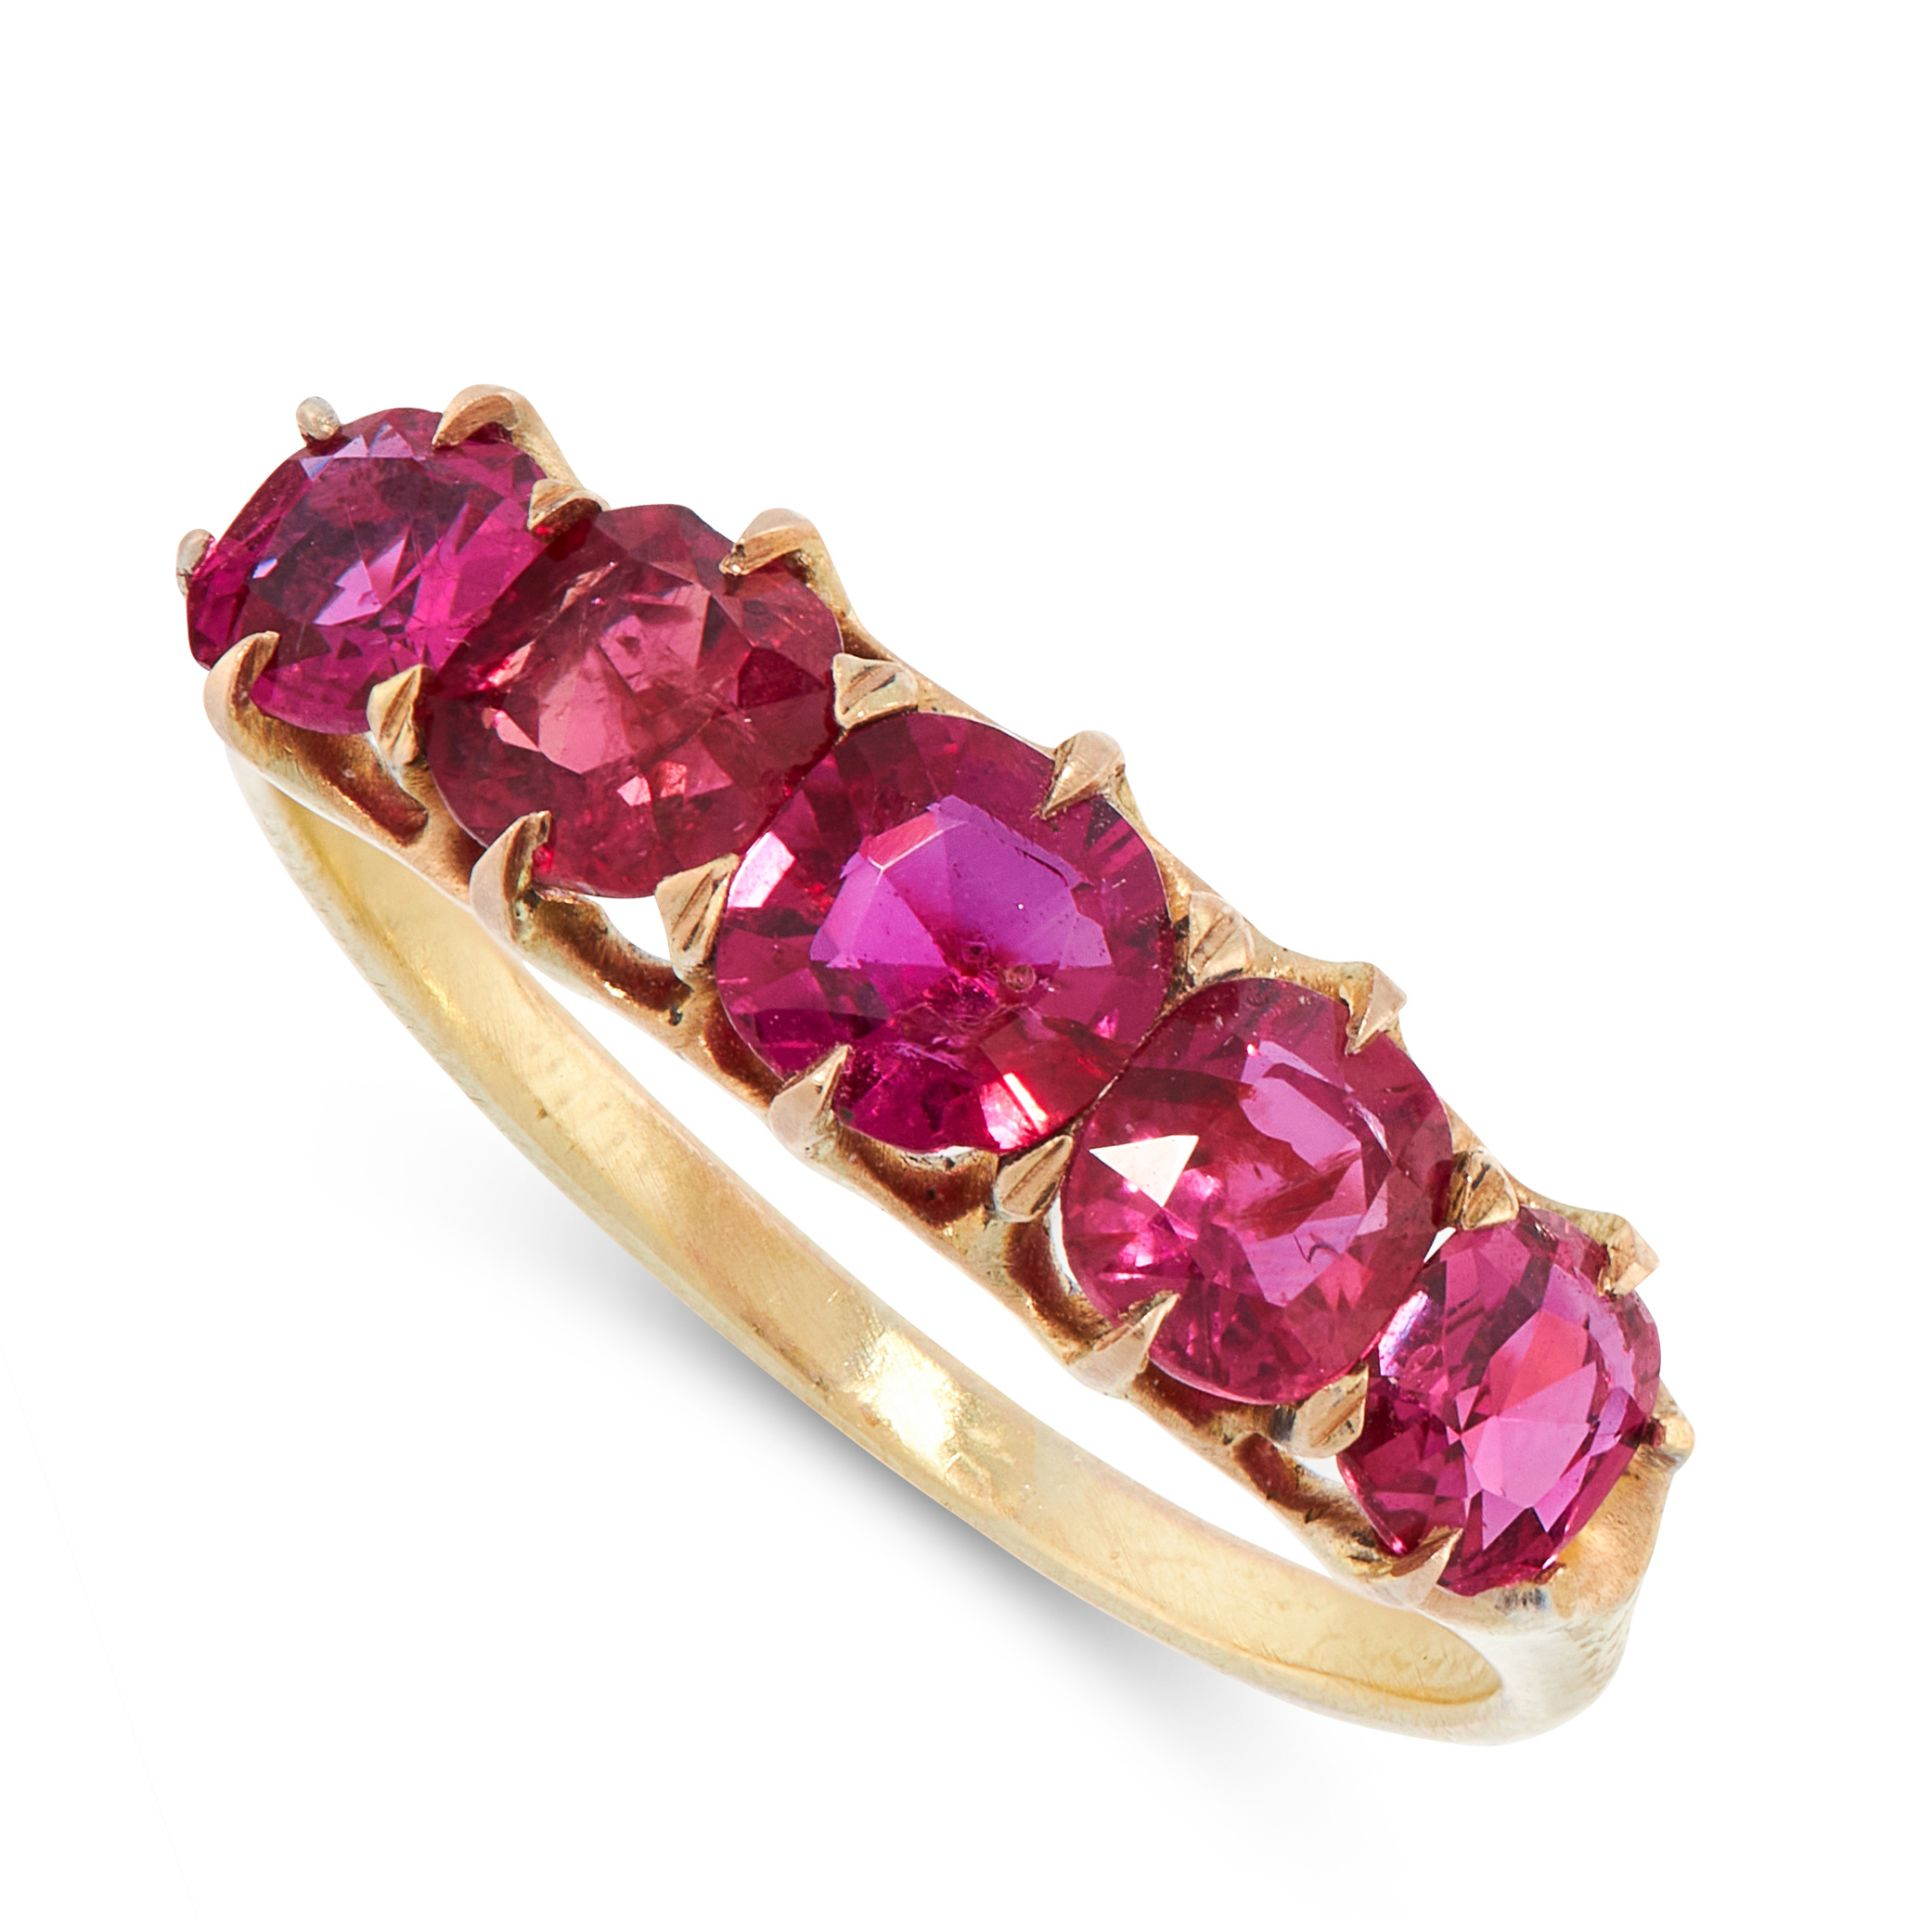 AN ANTIQUE UNHEATED RUBY DRESS RING in high carat yellow gold, set with a row of five graduated